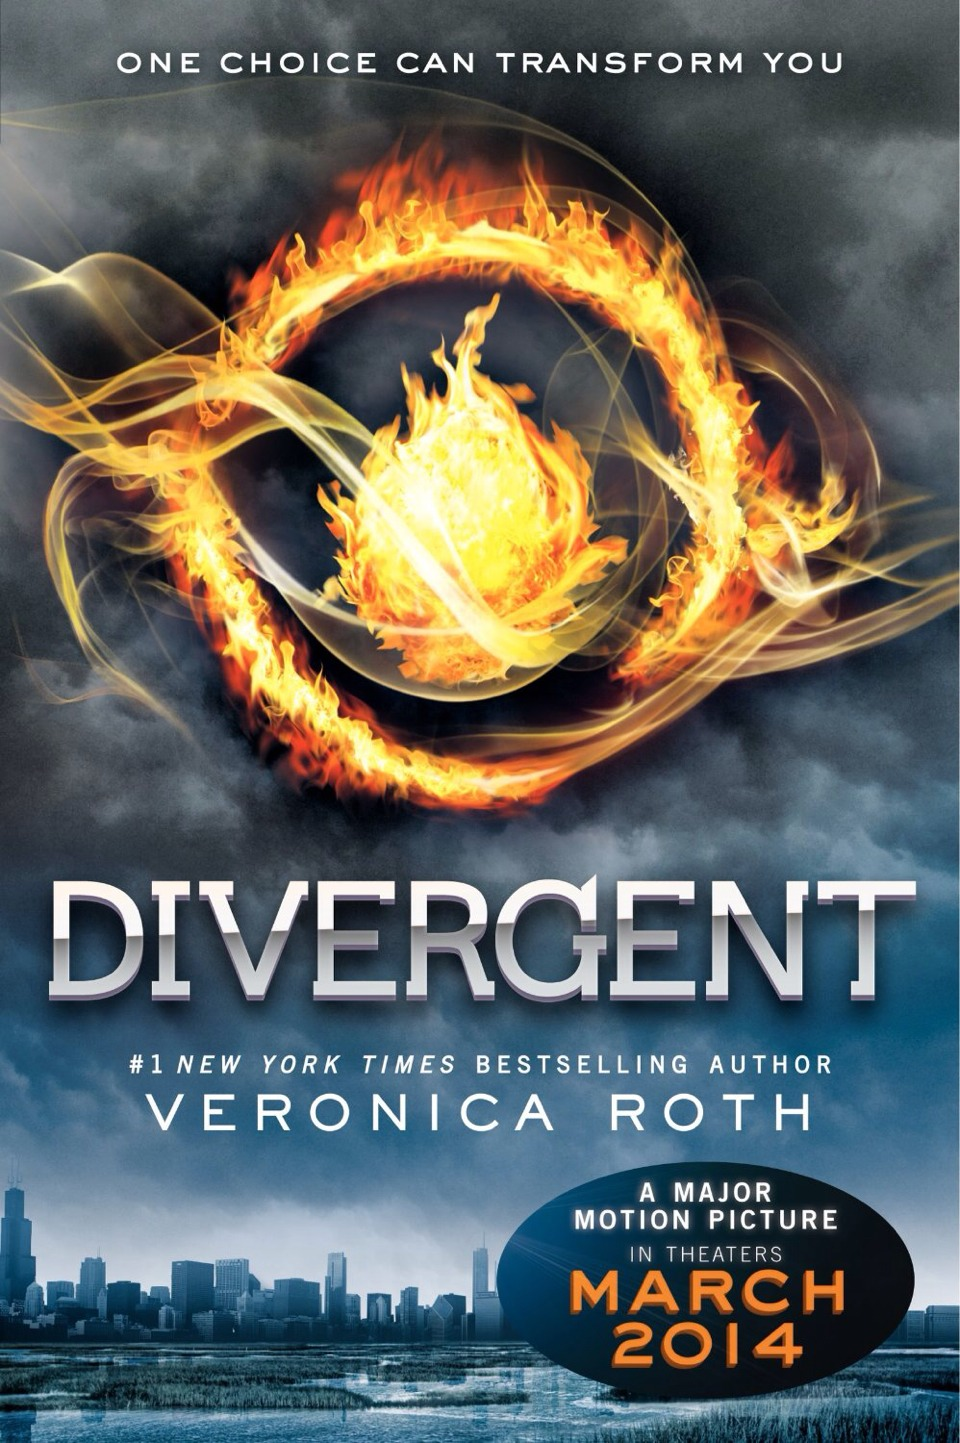 Divergent is a very very good book. It is now a major motion picture and is a series of 3.